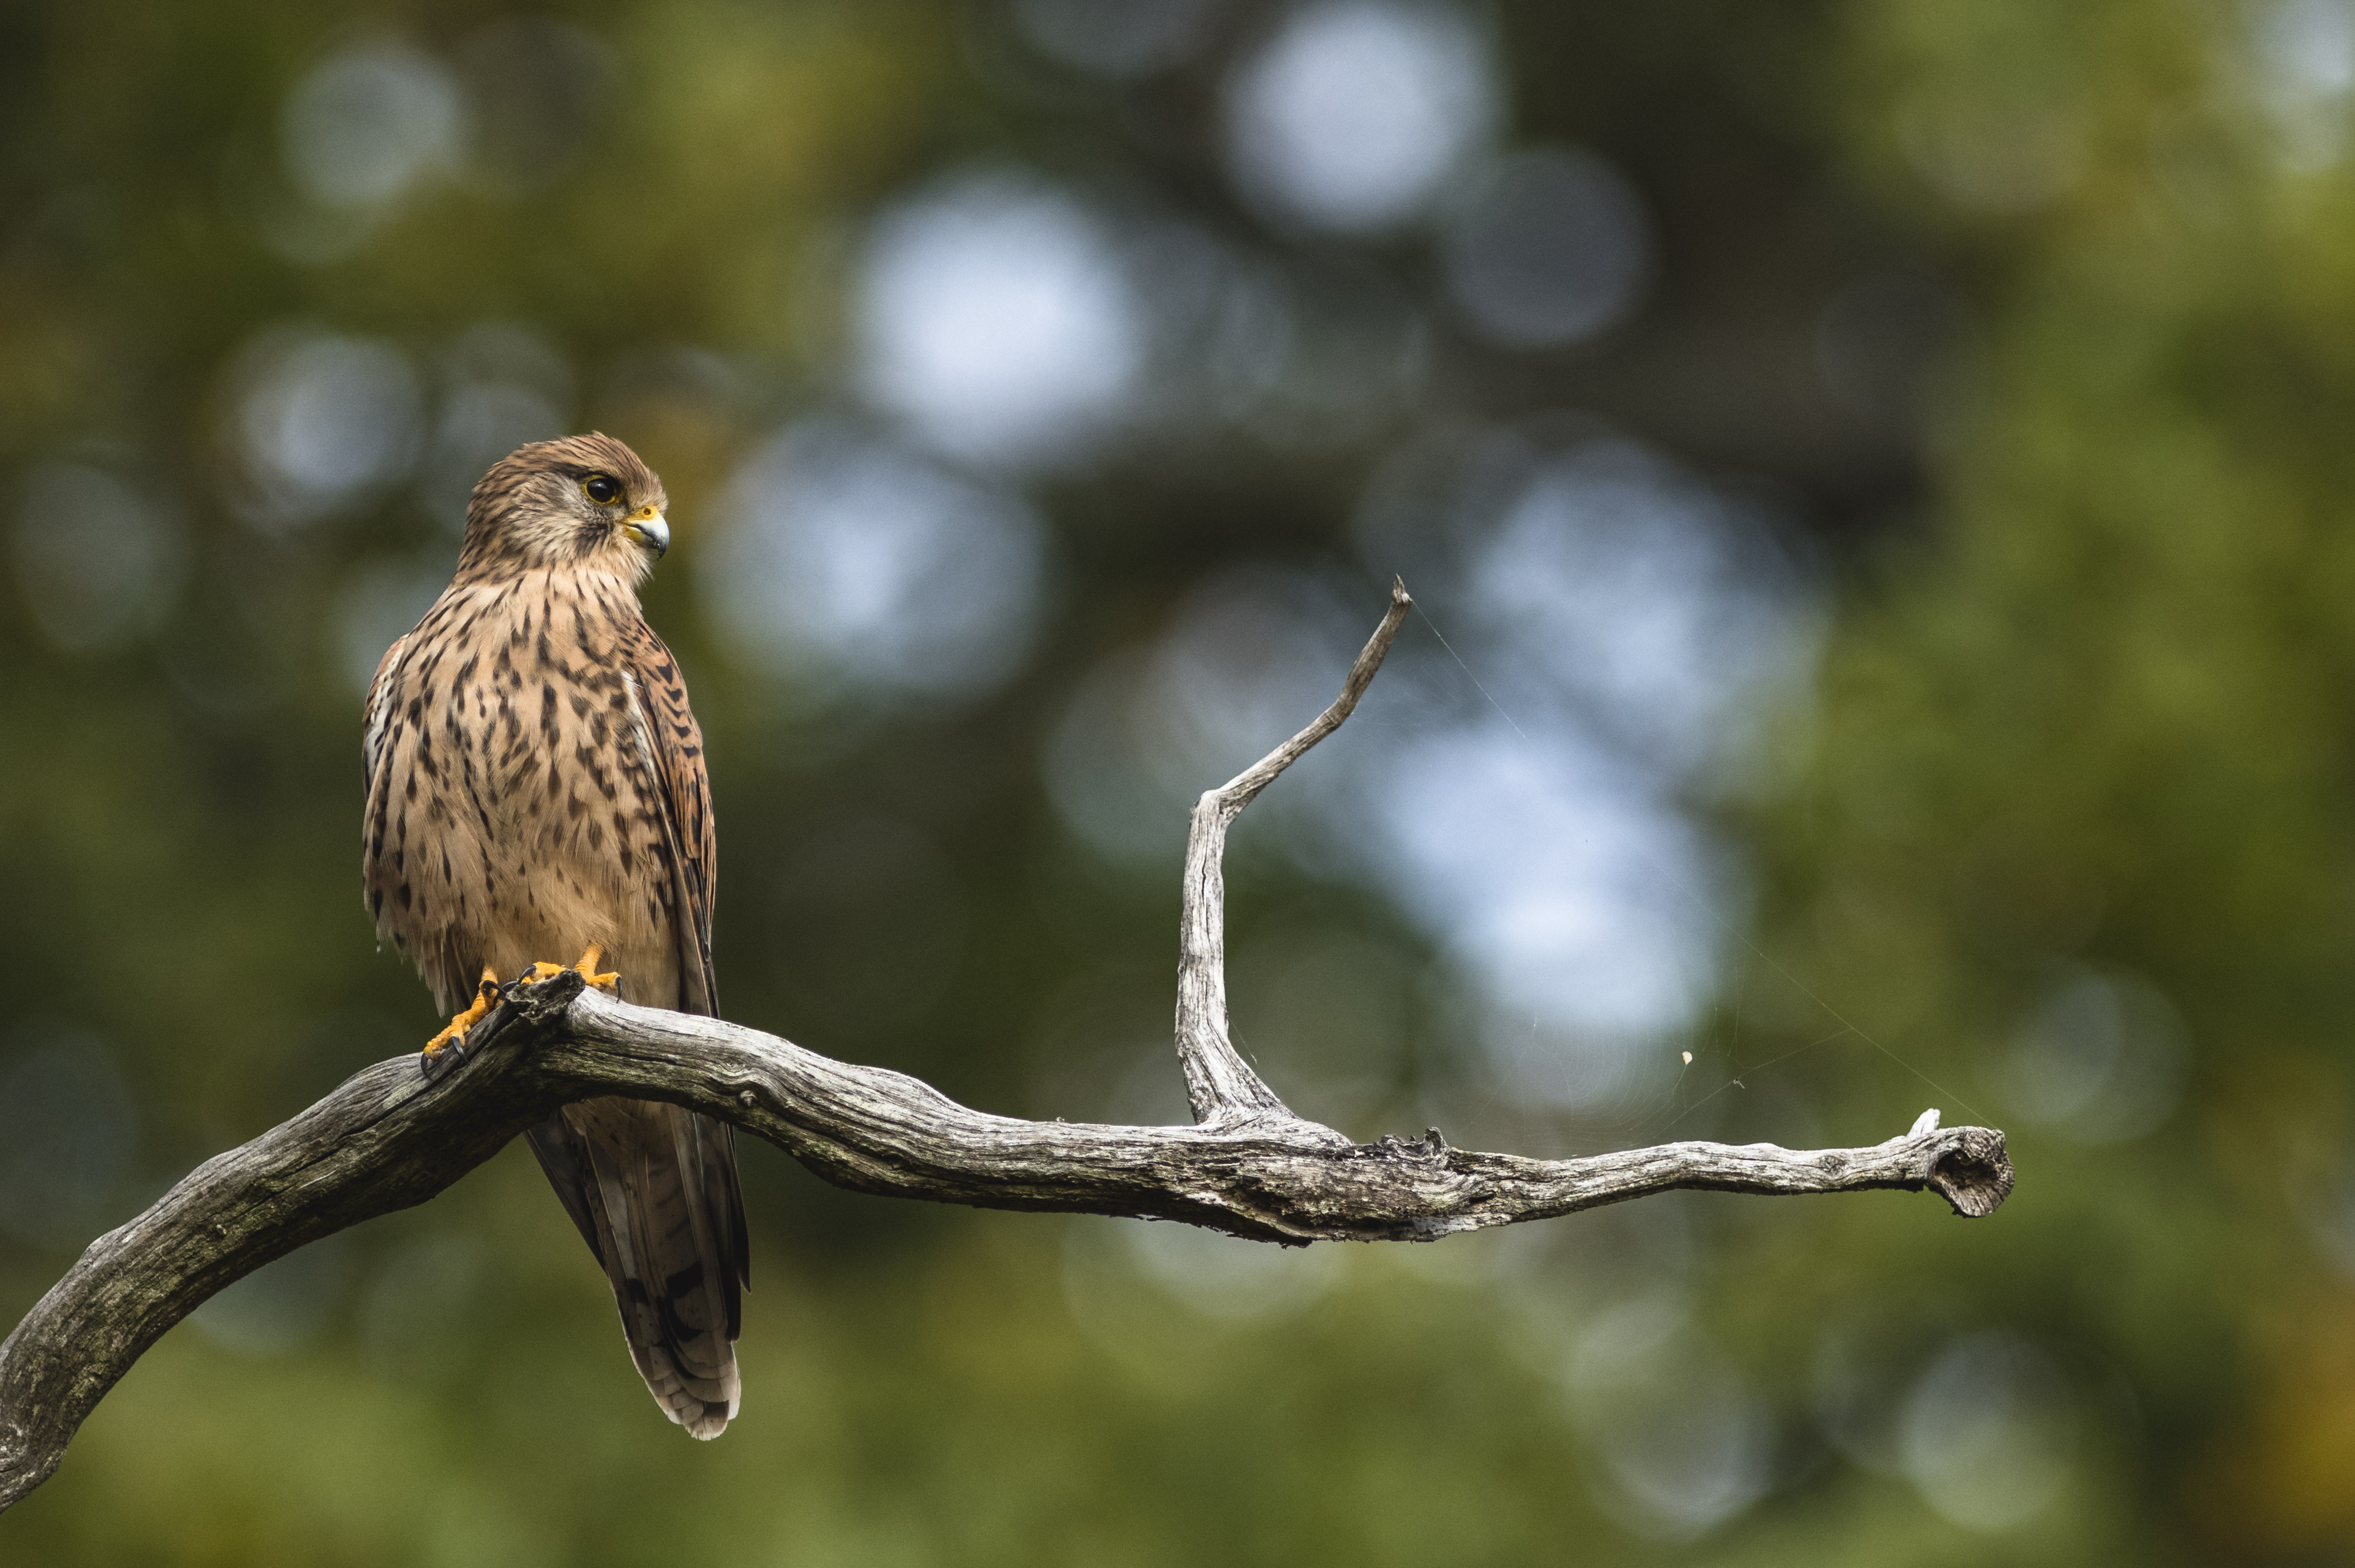 Falcon on a branch with a shallow depth of field